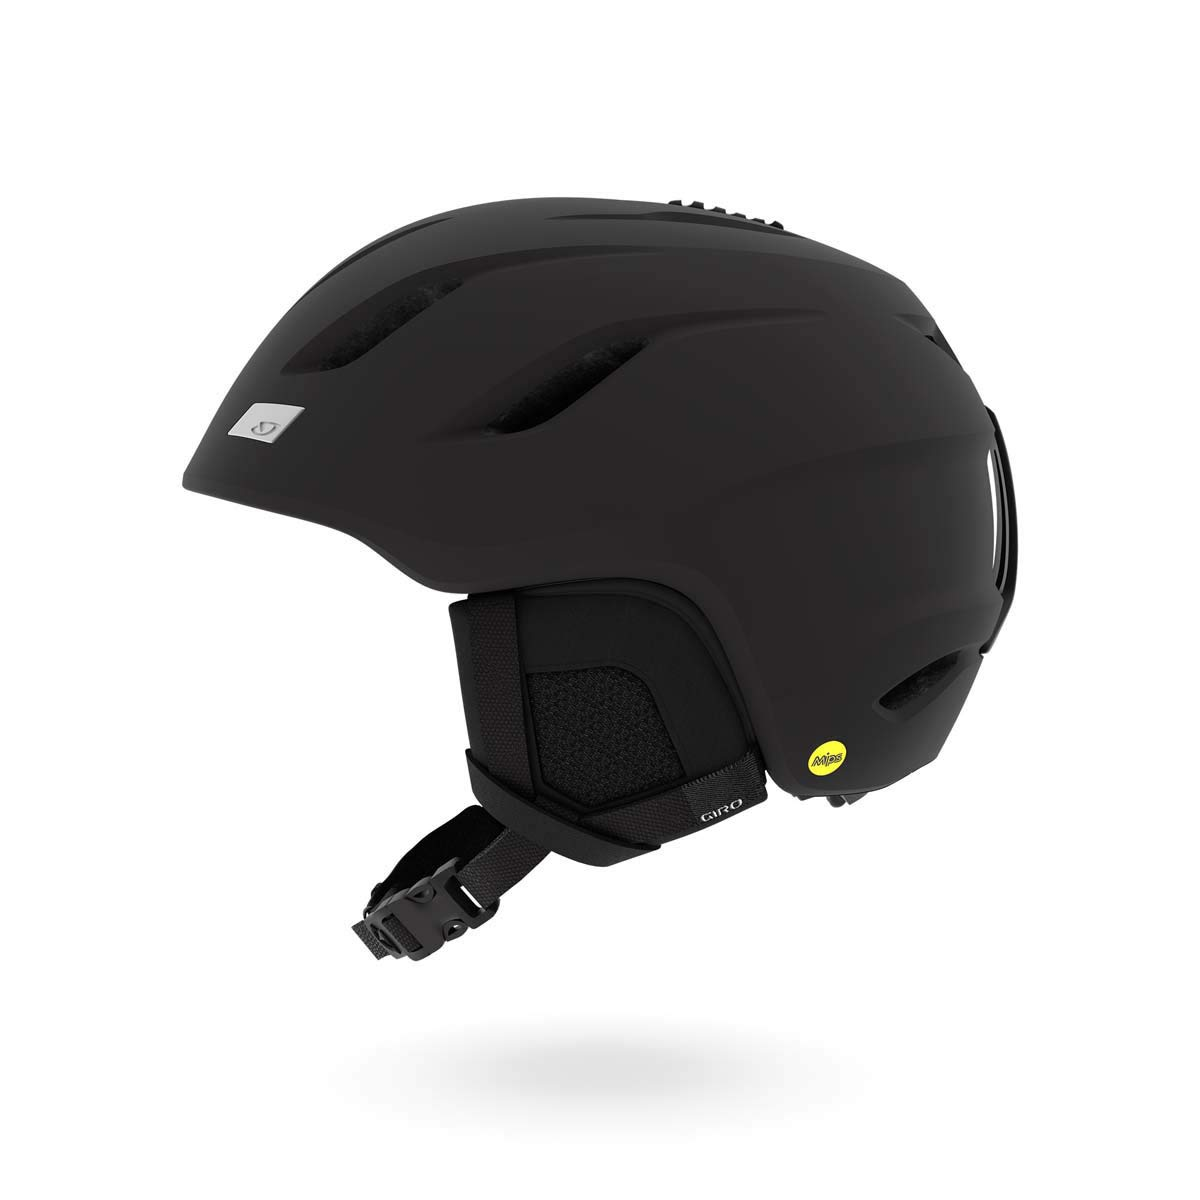 Top 15 Best Ski Helmet for Kids Reviews in 2020 10